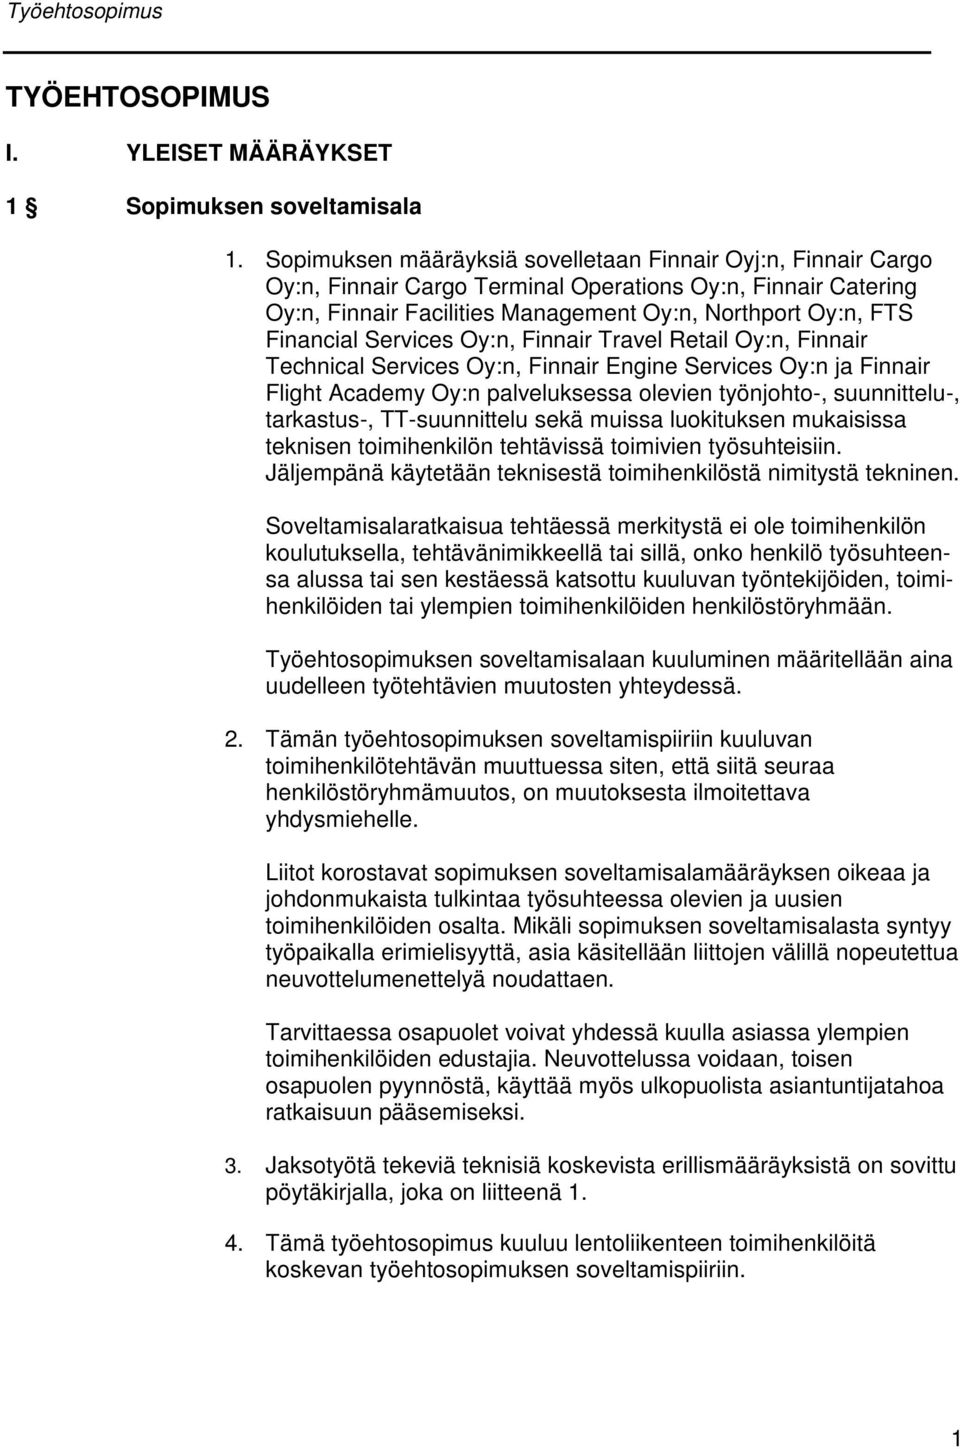 Services Oy:n, Finnair Travel Retail Oy:n, Finnair Technical Services Oy:n, Finnair Engine Services Oy:n ja Finnair Flight Academy Oy:n palveluksessa olevien työnjohto-, suunnittelu-, tarkastus-,